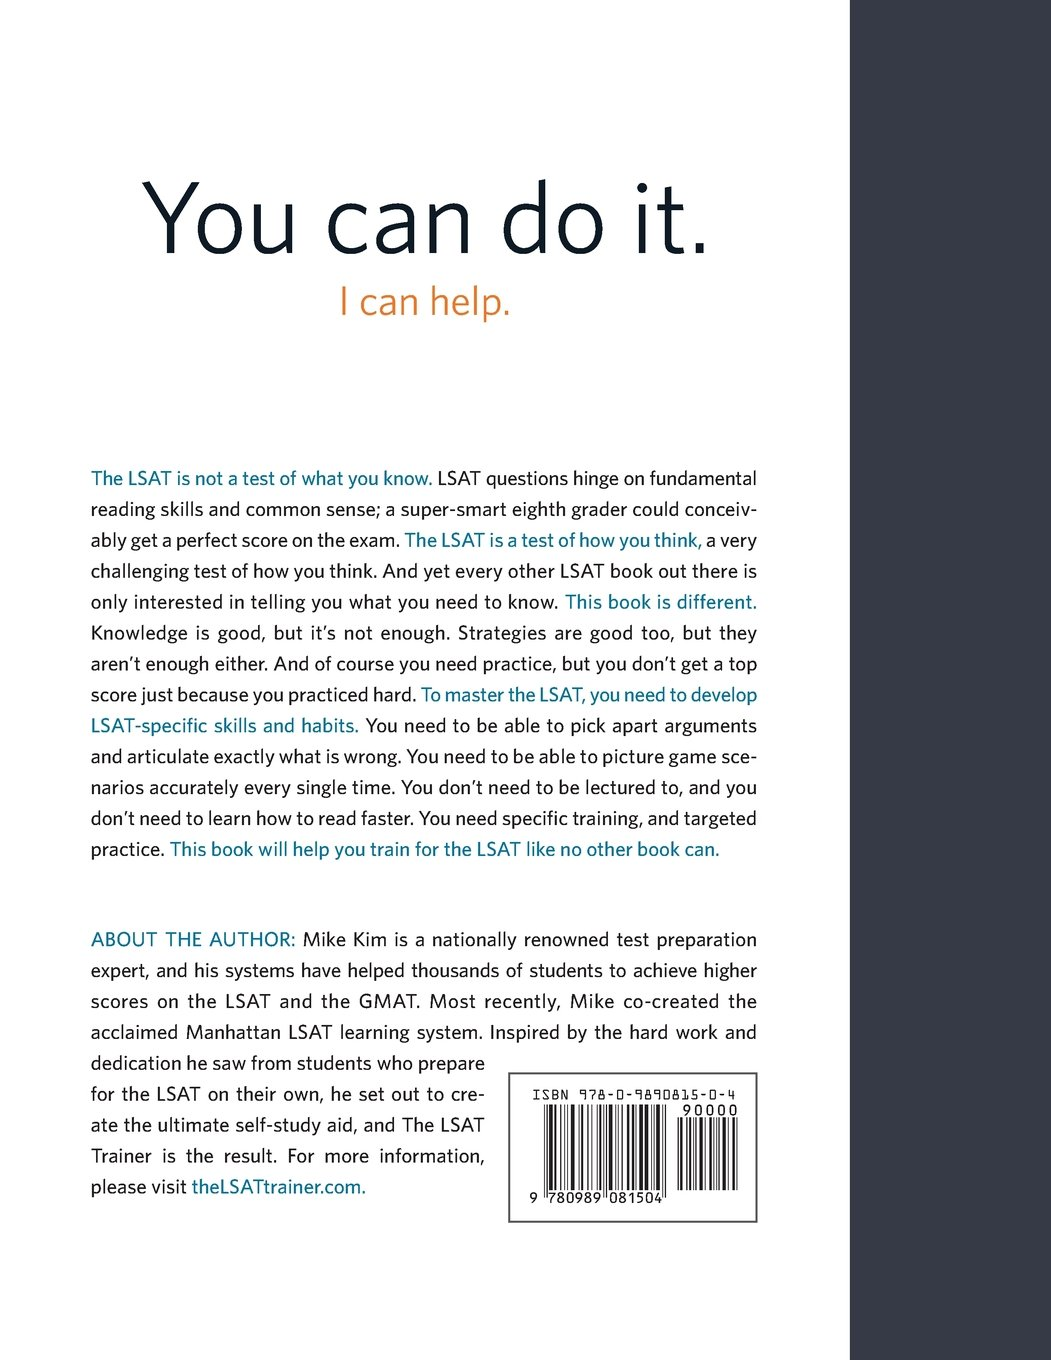 Amazon.fr - The LSAT Trainer: A remarkable self-study guide for the